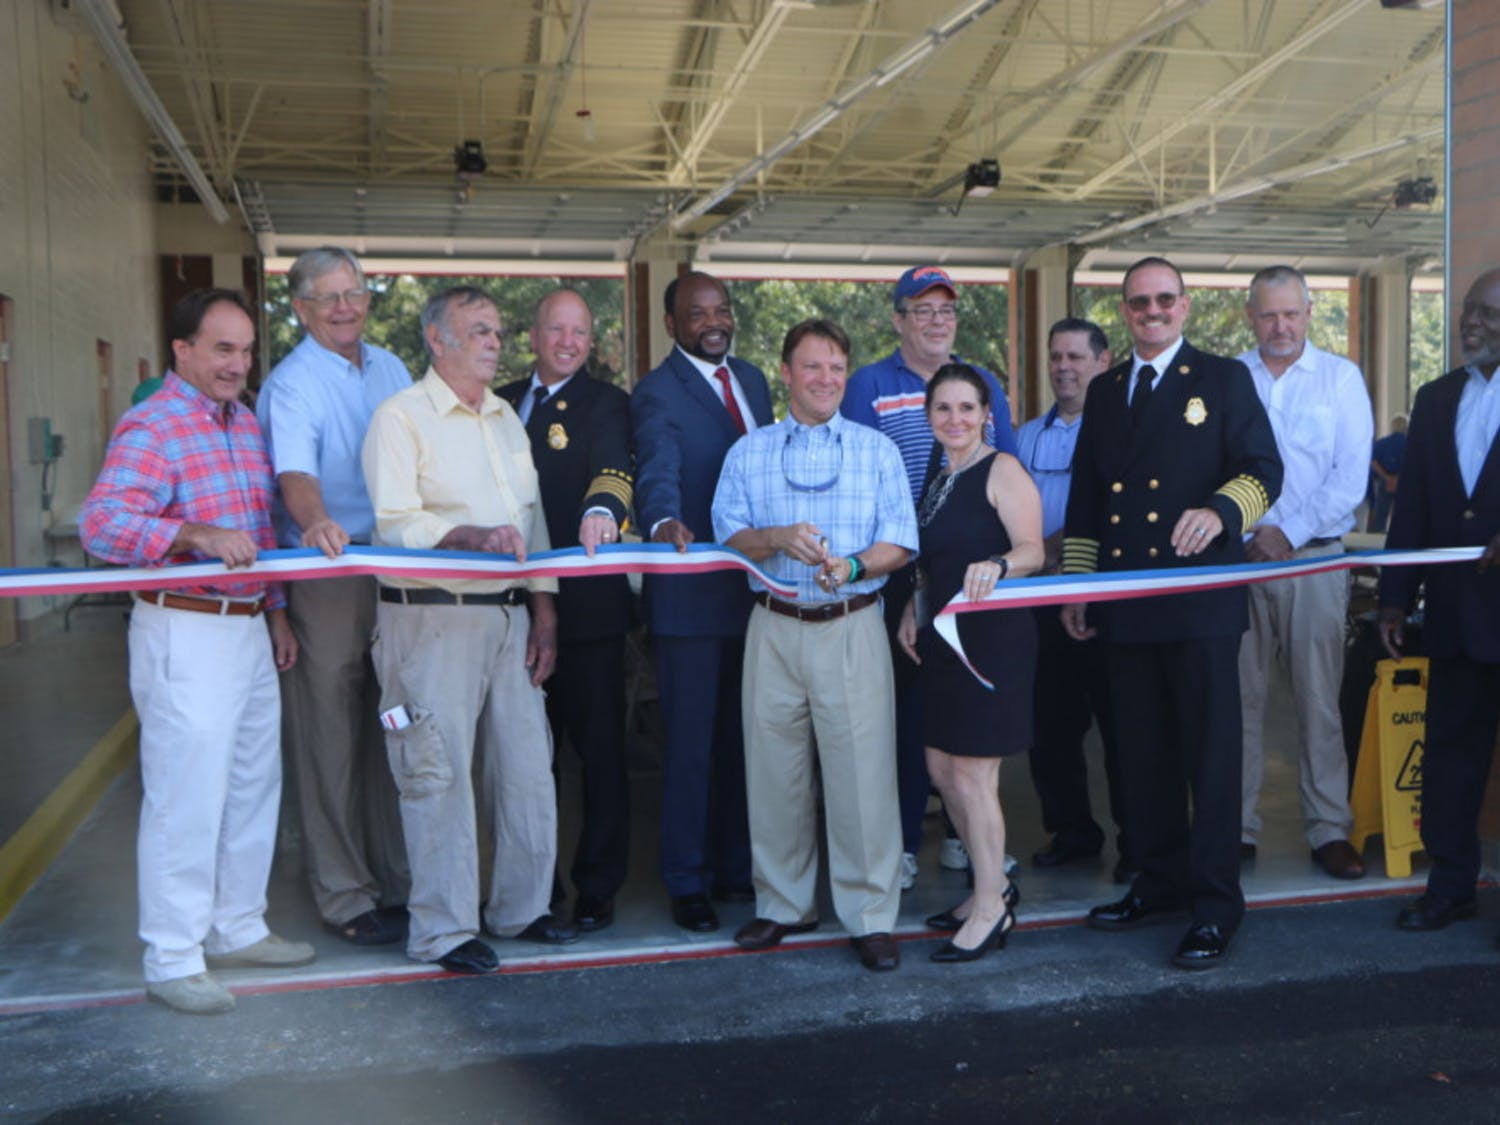 Alachua County Commissioner Ken Cornell cuts the ribbon in front of the new Fire Rescue Station 33, located at 5901 NW 34th Blvd., on Friday. The station will house six ambulances.